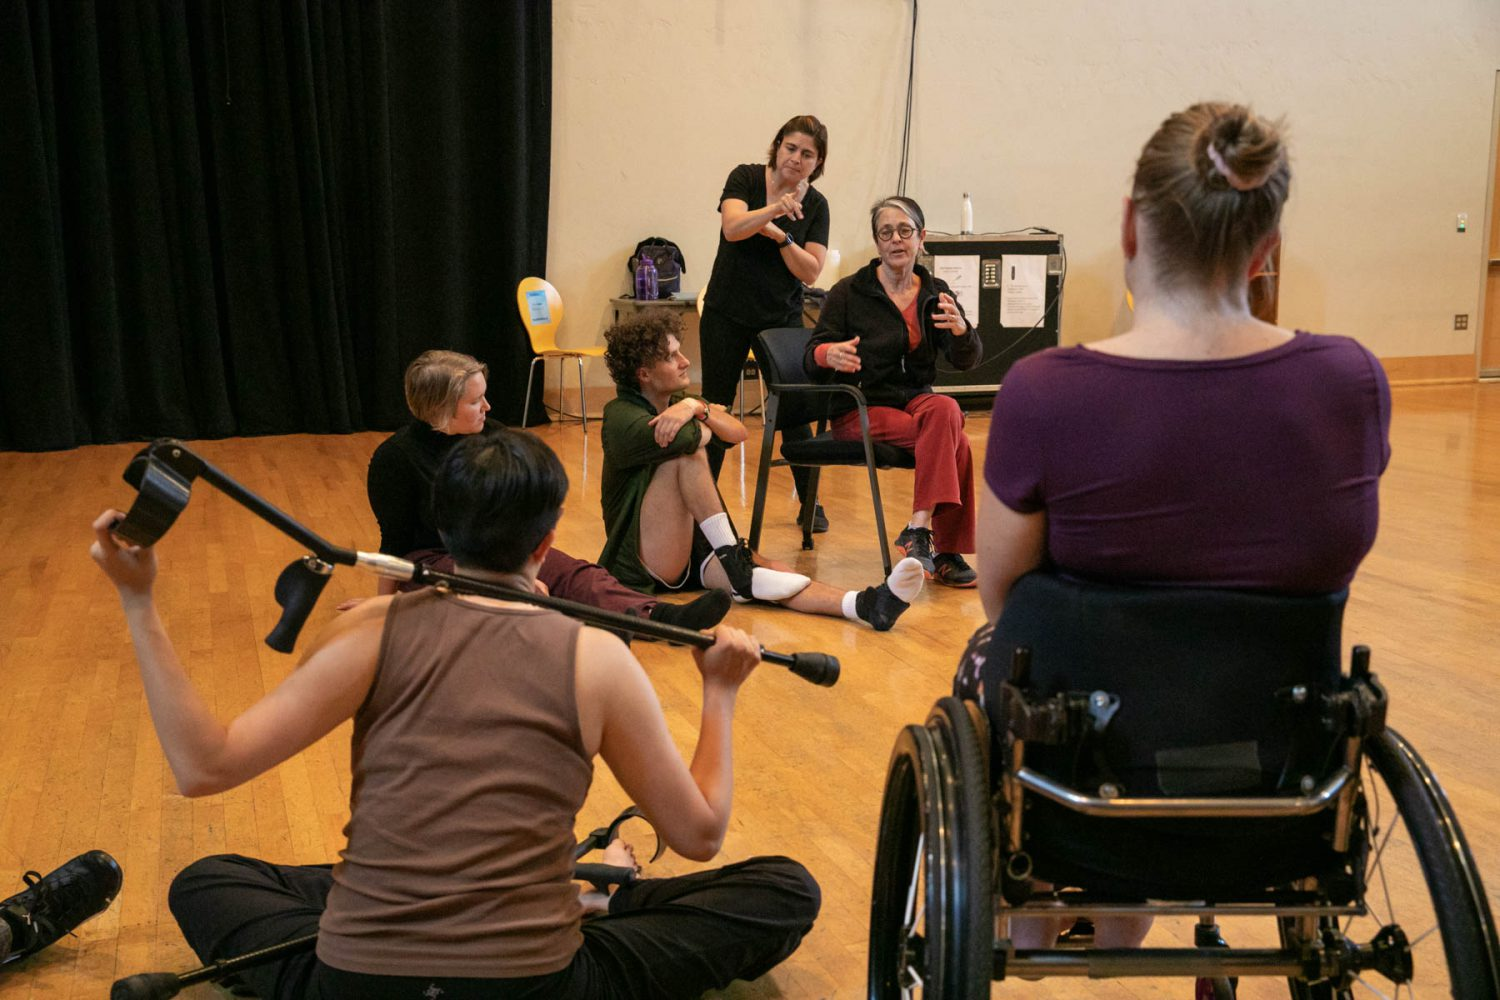 Four dancers in a studio looking to Victoria Marks as she speaks. An ASL interpreter is behind Victoria.